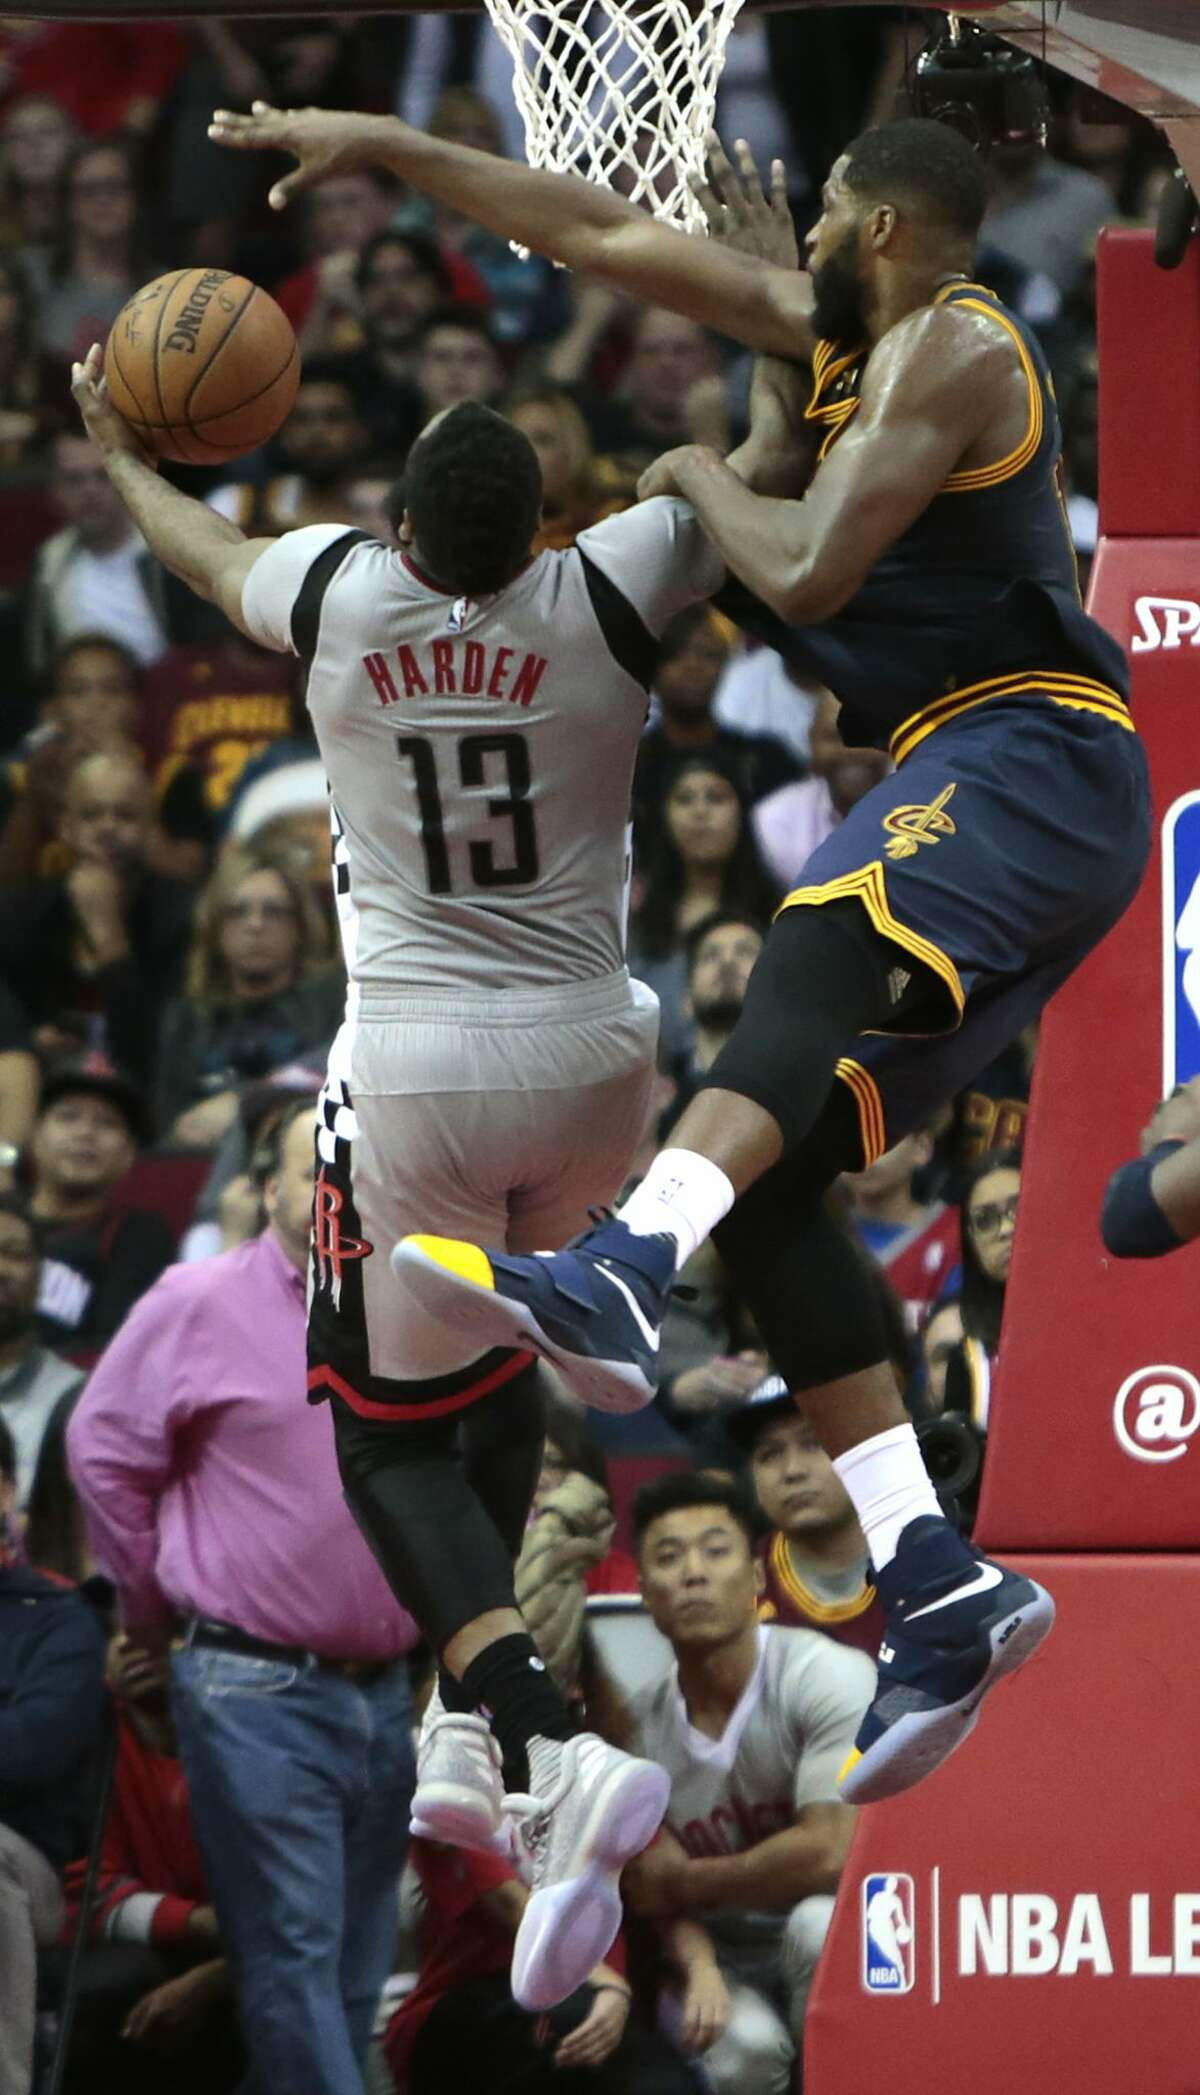 Houston Rockets guard James Harden (13) is fouled by Cleveland Cavaliers center Tristan Thompson (13) as he drives in for a layup during the fourth quarter of an NBA basketball game at Toyota Center on Sunday, March 12, 2017, in Houston. ( Brett Coomer / Houston Chronicle )